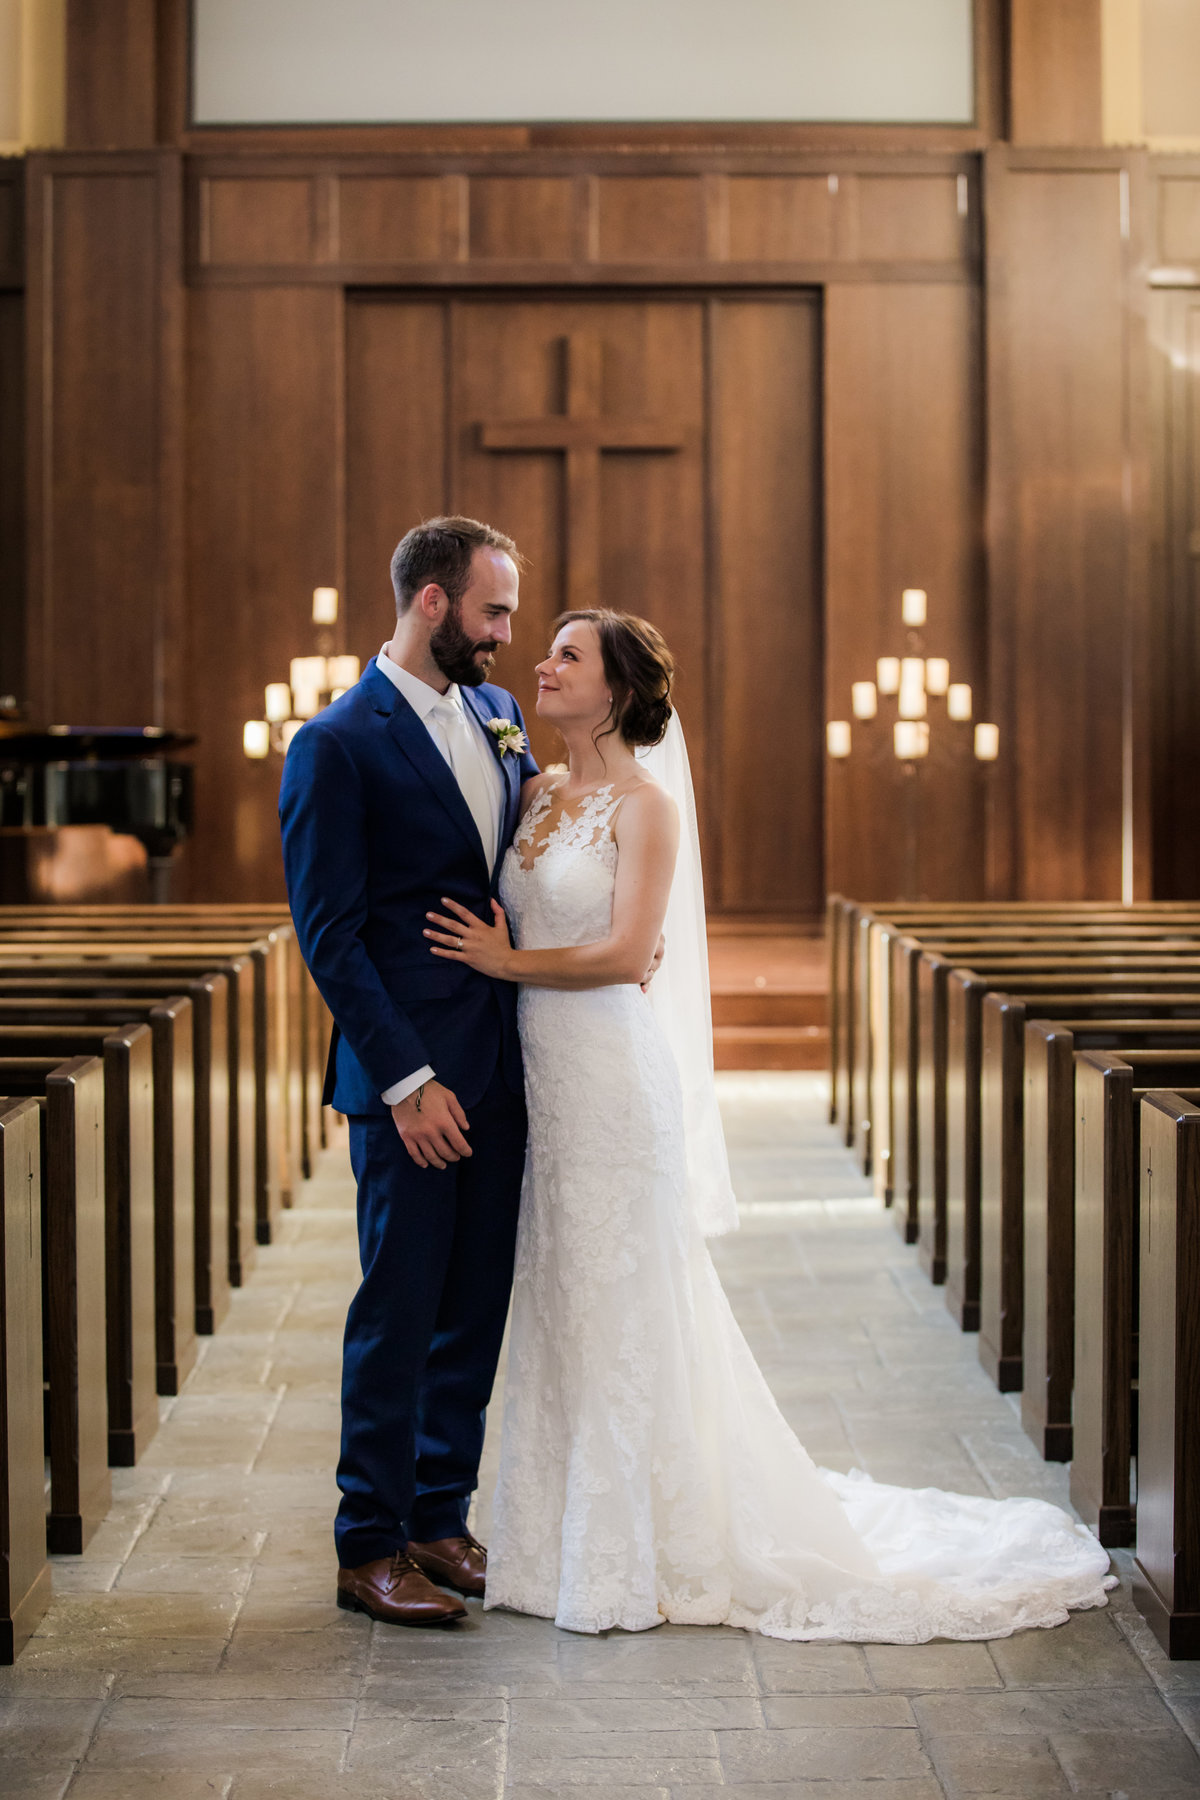 Baptist Wedding - Church Wedding - Church Weddings - Nashville Church Weddings - nashville TN - Nashville Weddings - Nashville Wedding - Couples Who Love Jesus - SouthernBride - SouthernBrides - Nashville Bride024